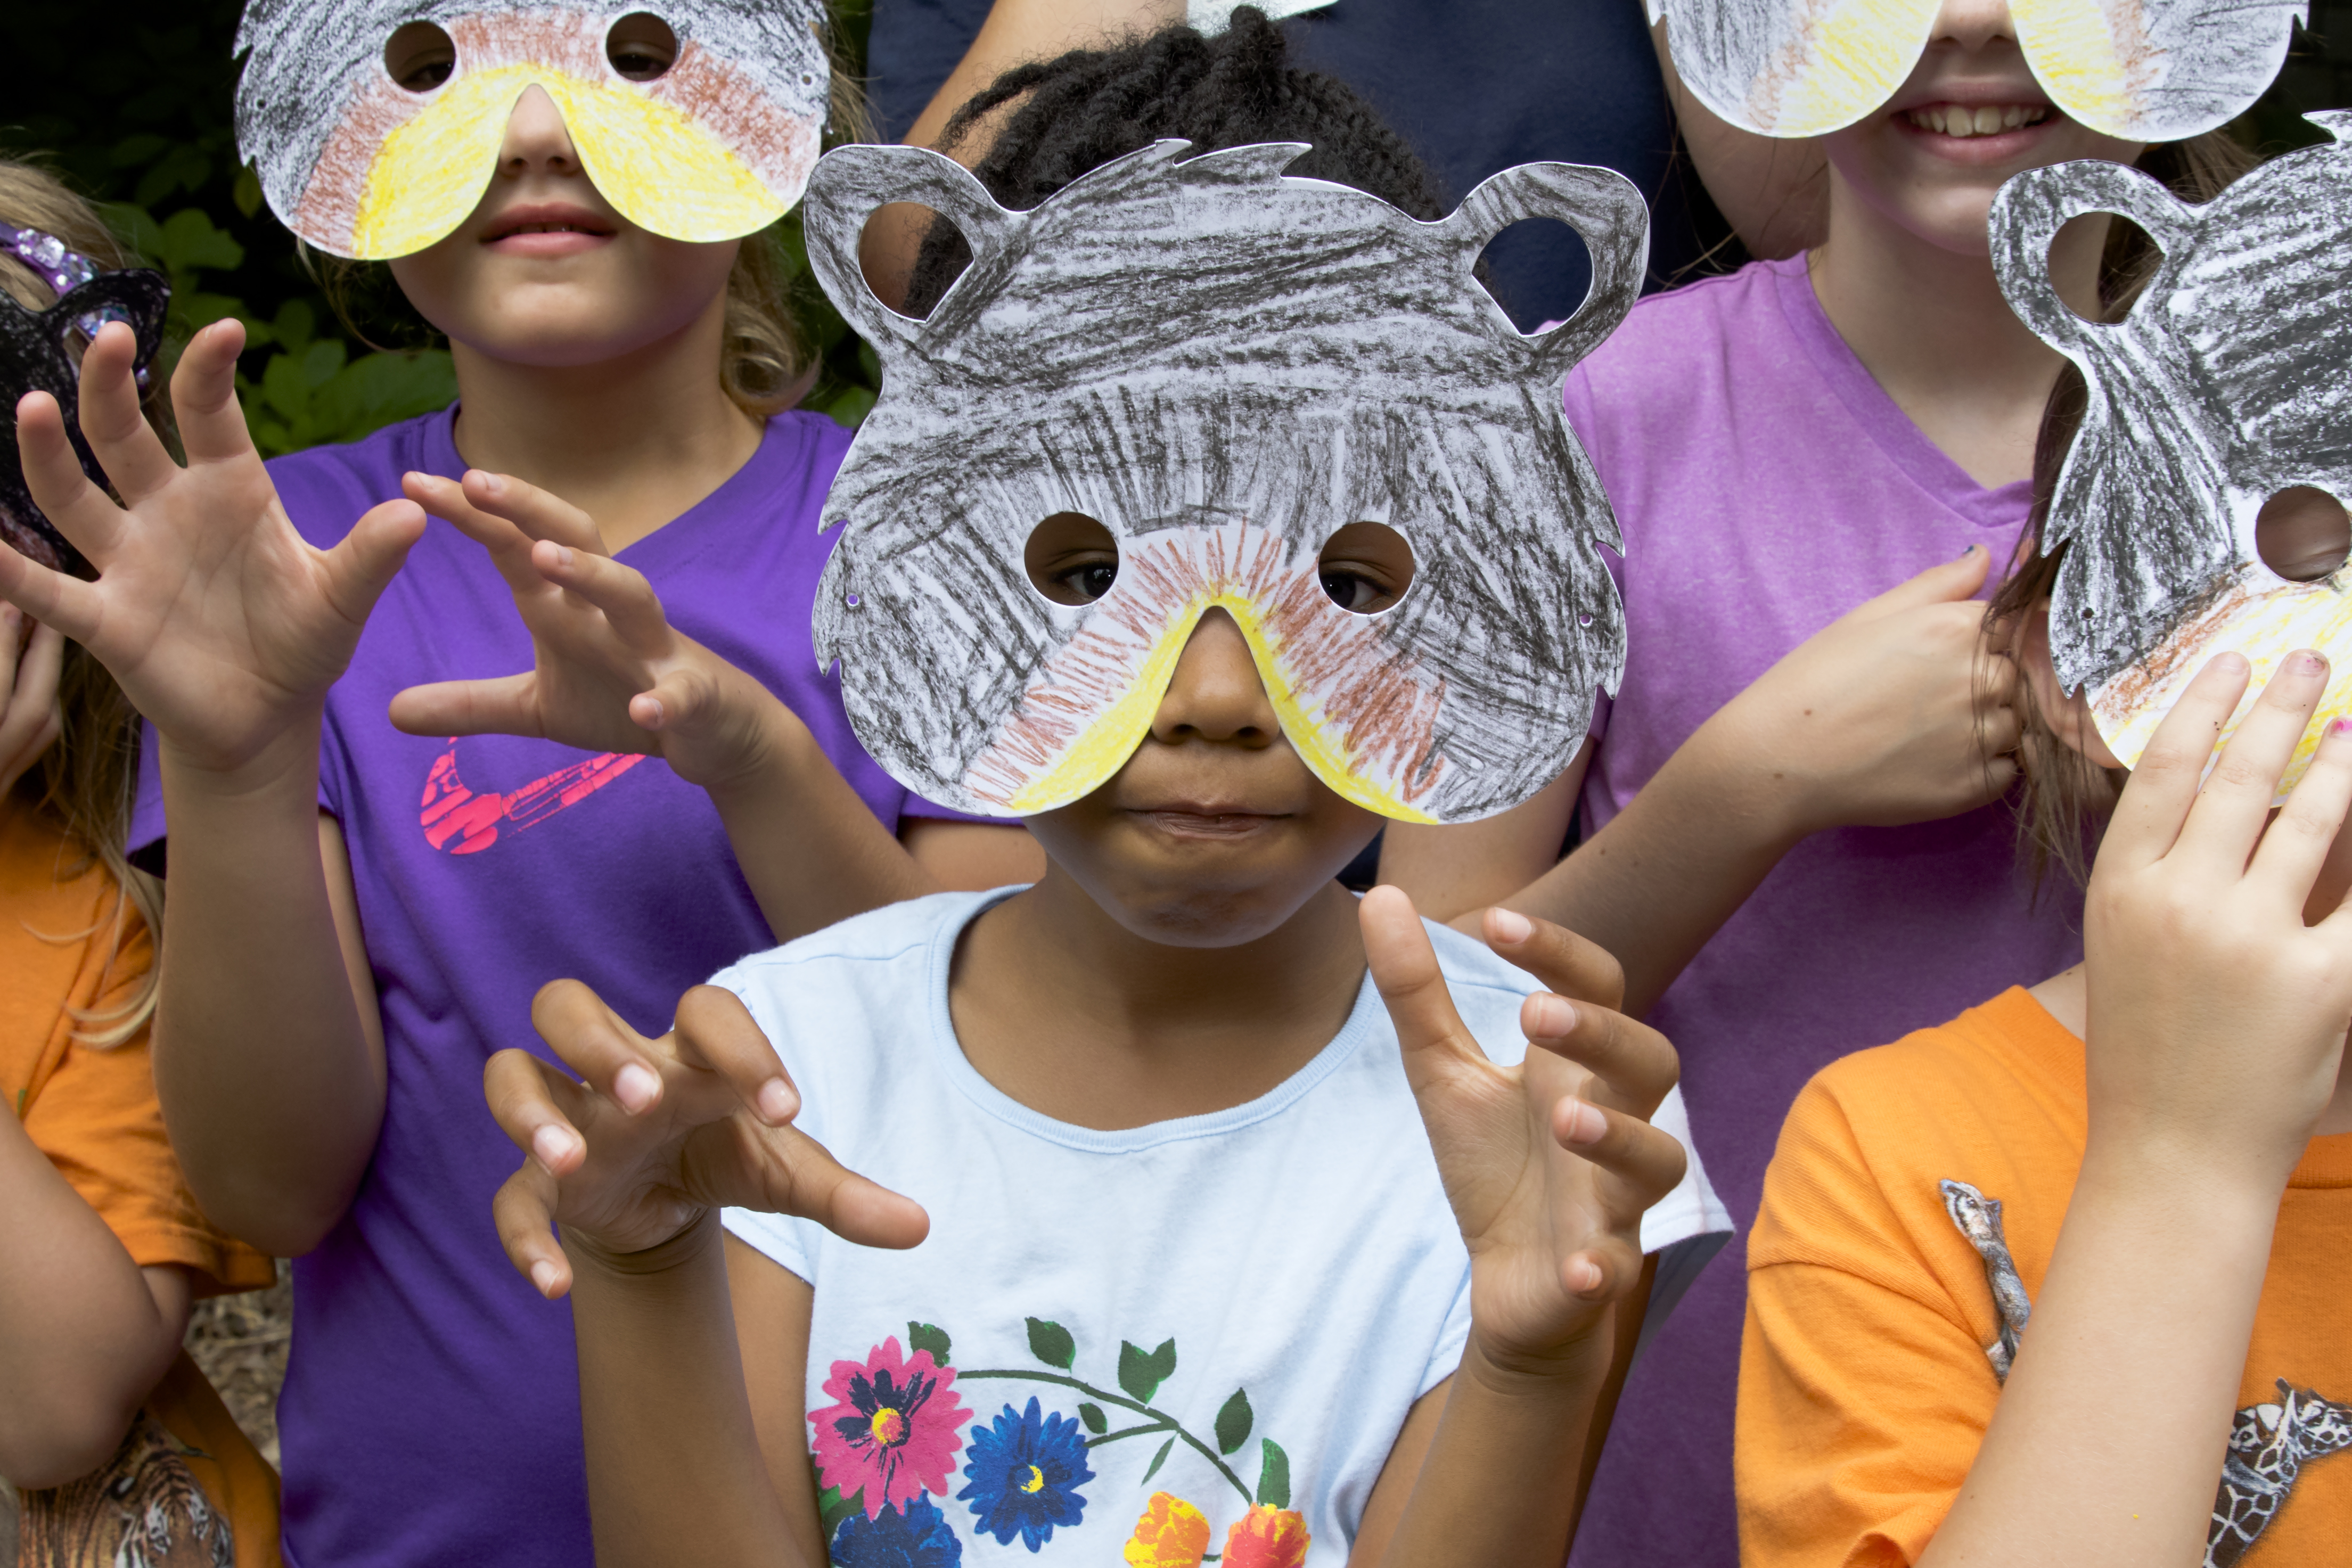 Zoo Atlanta Event Calendar, Spring 2018 Zoo Atlanta, Zoo Atlanta Kids Camps